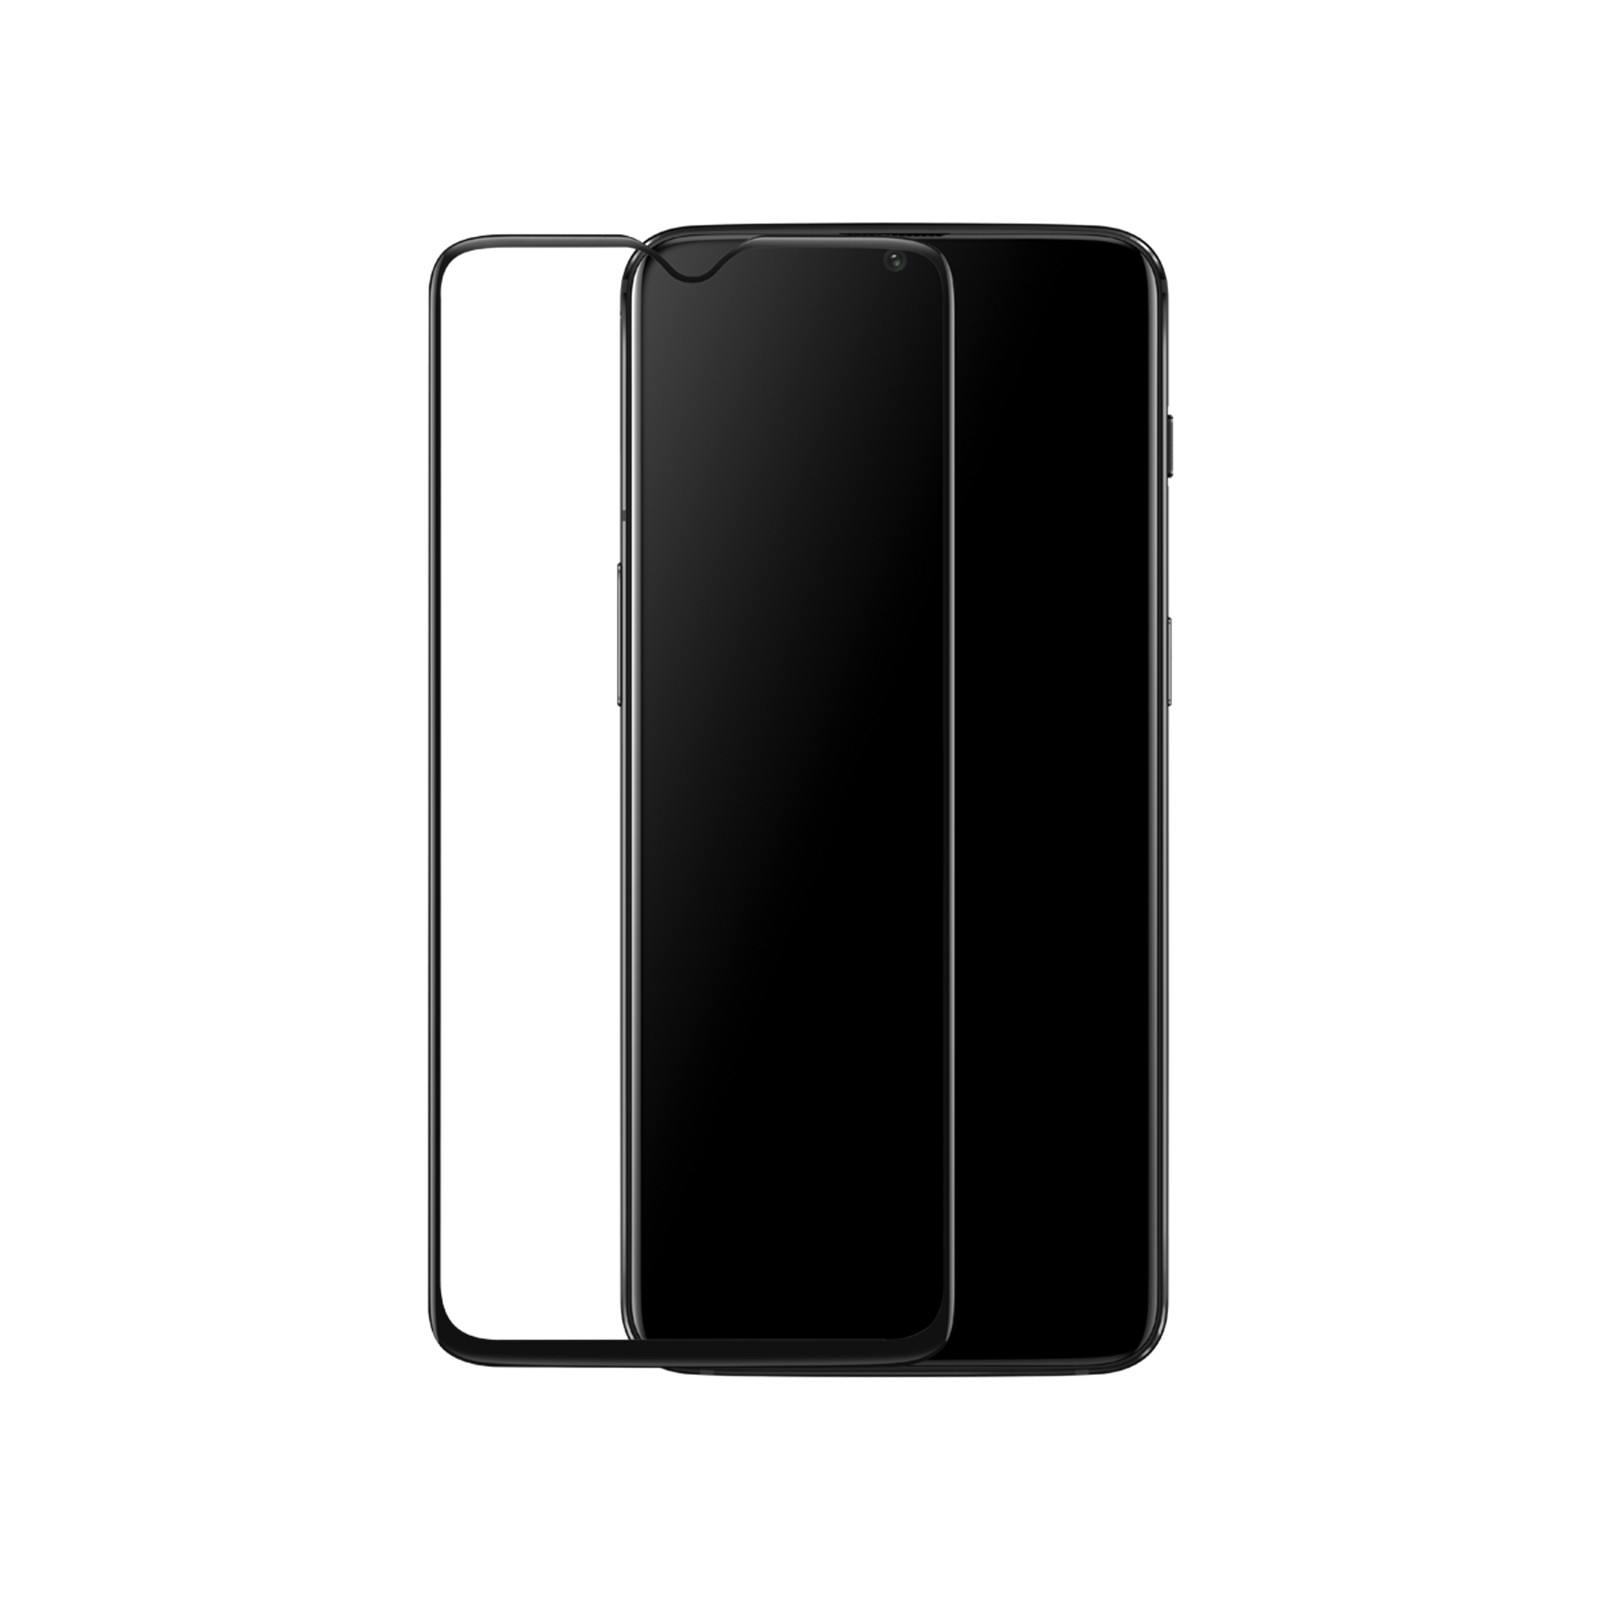 OnePlus 6T Full Covered Tempered Glass Screen Protector Black, Edge-to-Edge protection,9H hardness,Smudge Resistant, Compatible with Original Oneplus 6T ...